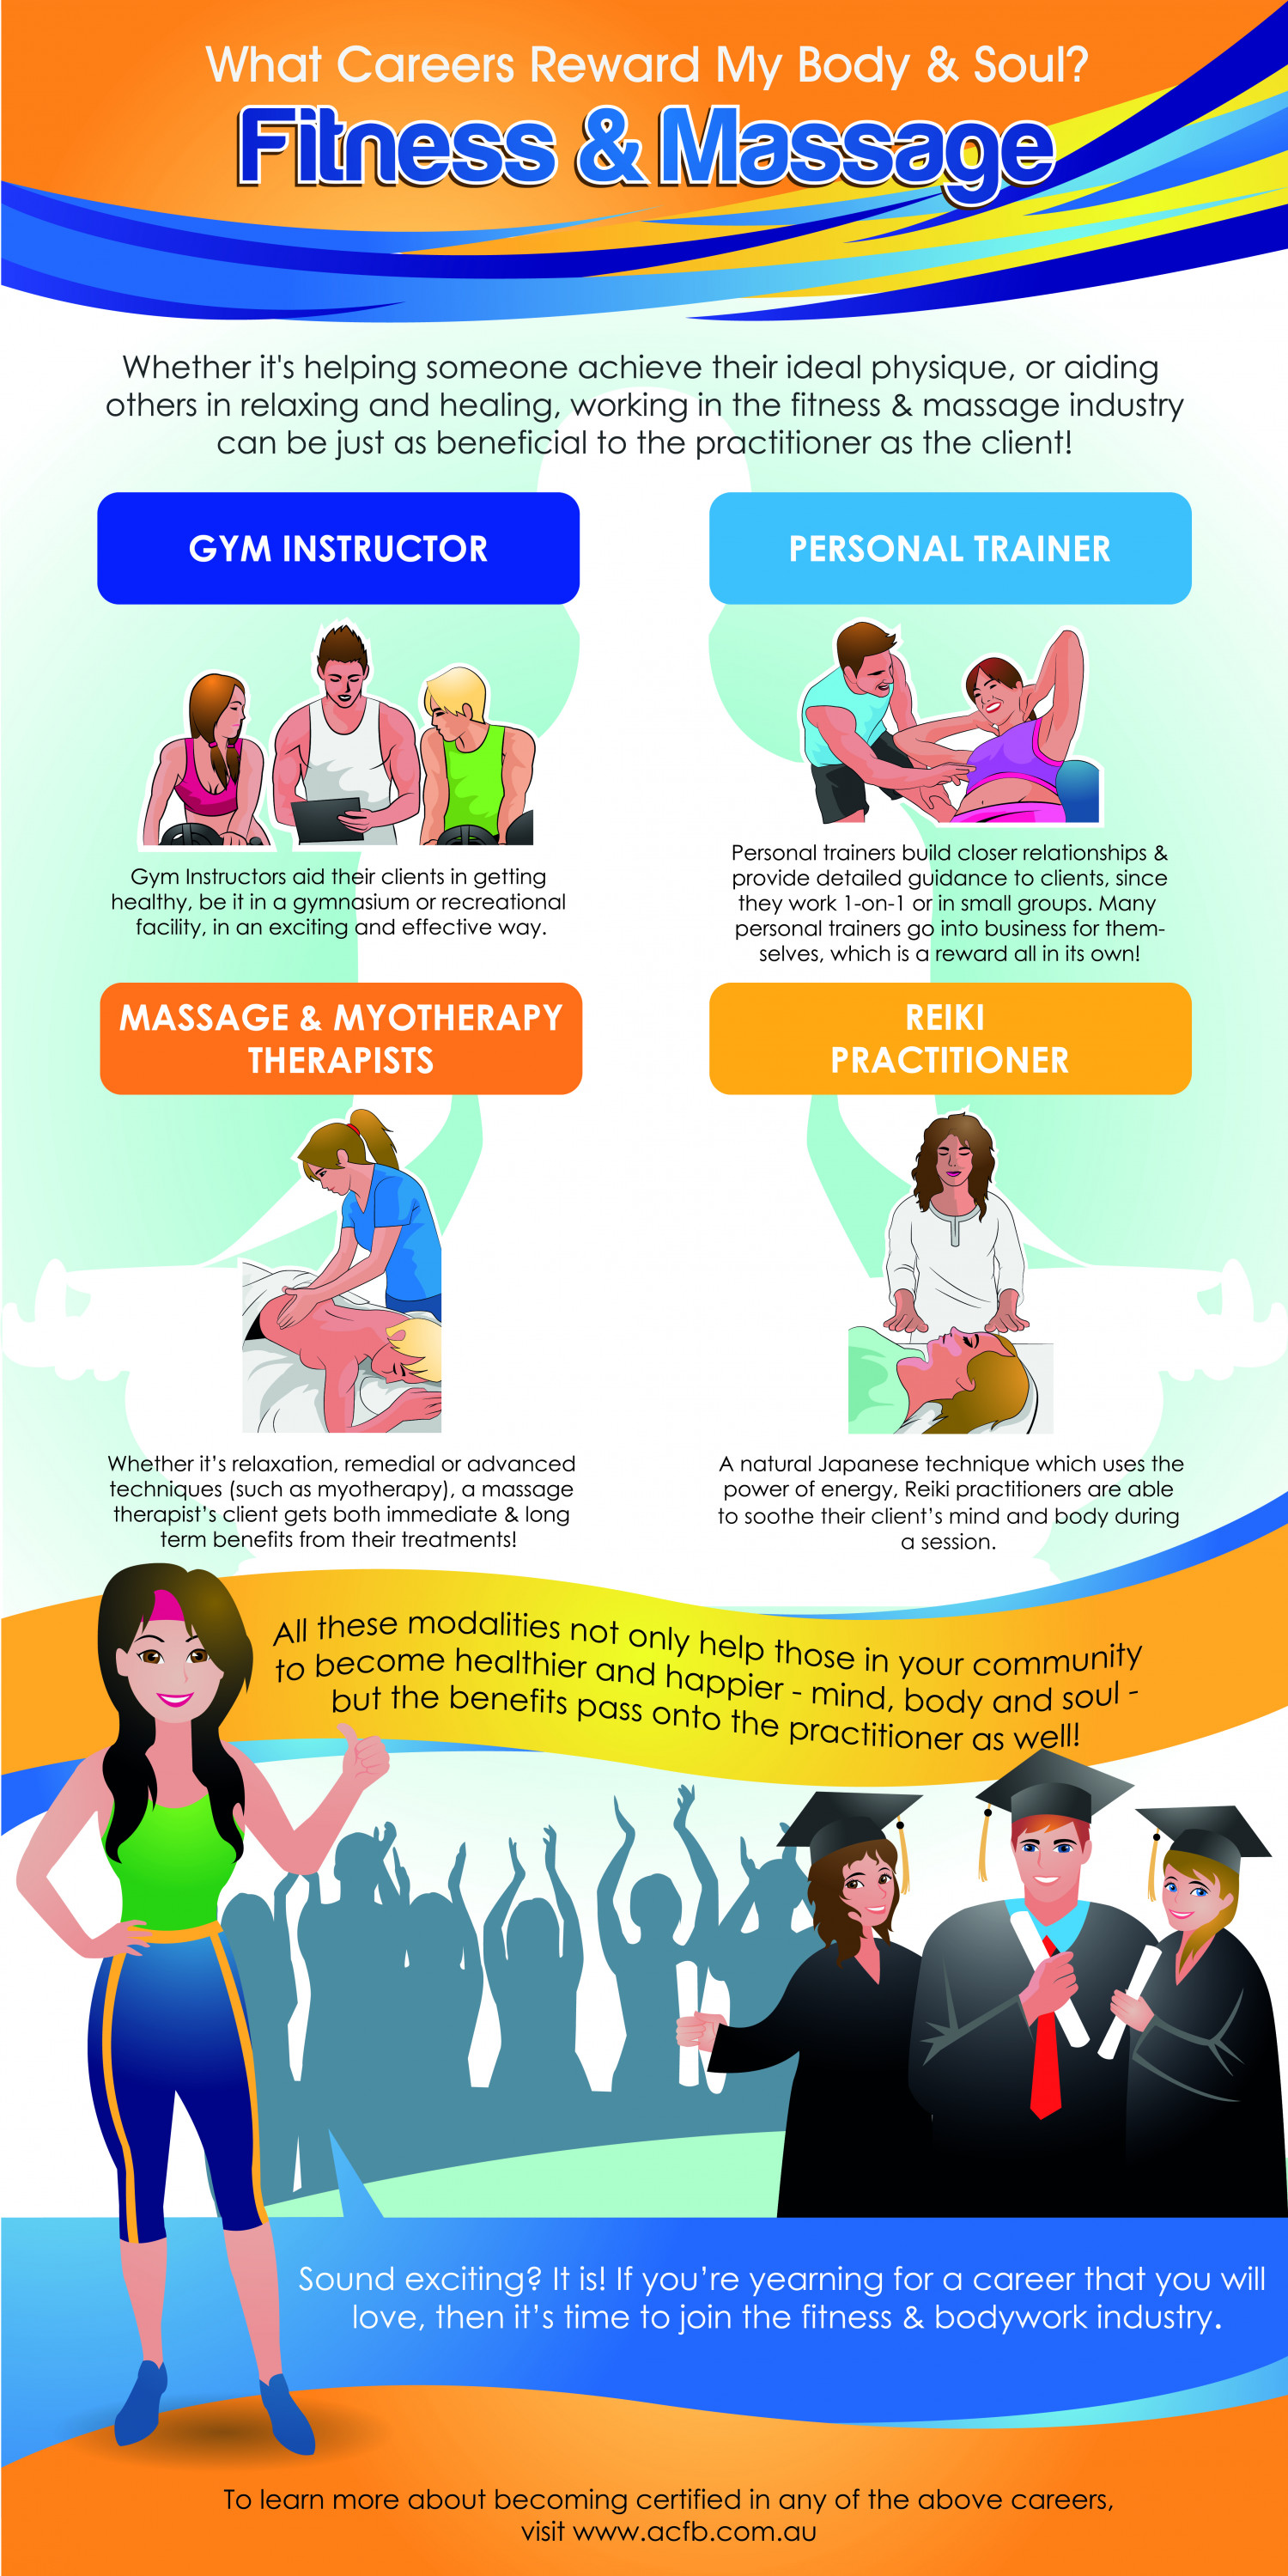 Fitness & Massage - Careers that Reward My Body and Mind Infographic